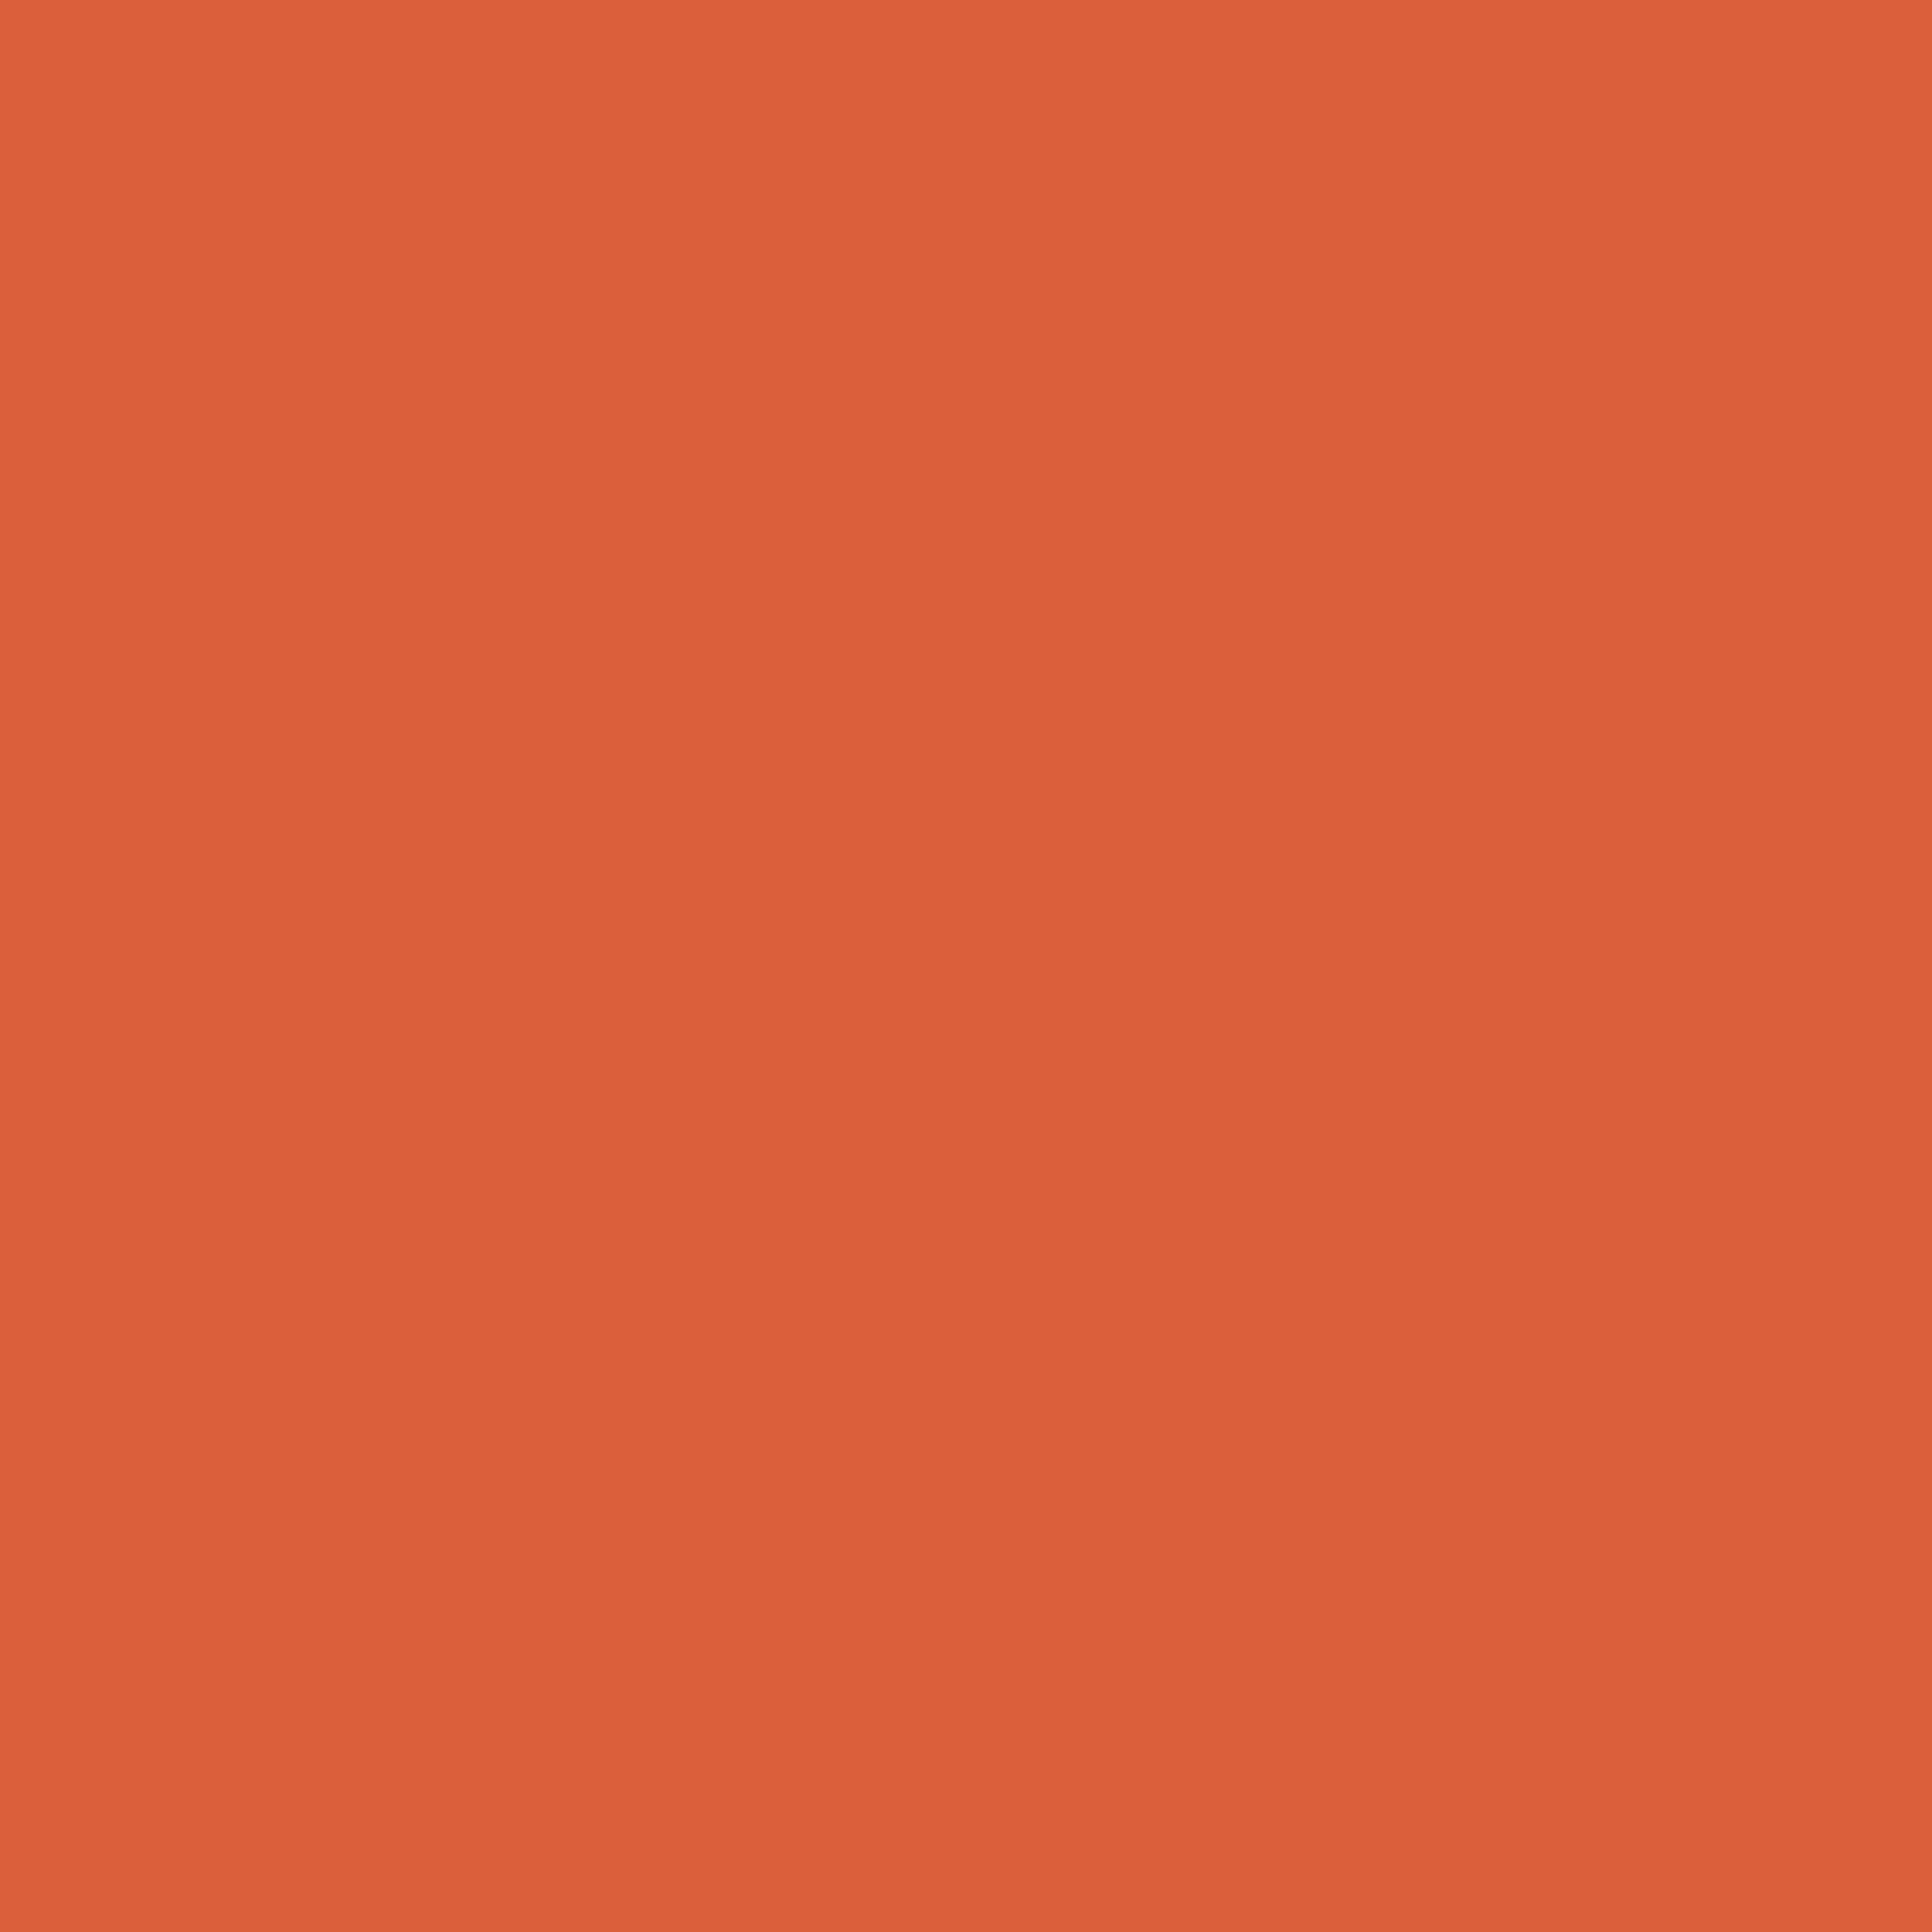 3600x3600 Medium Vermilion Solid Color Background